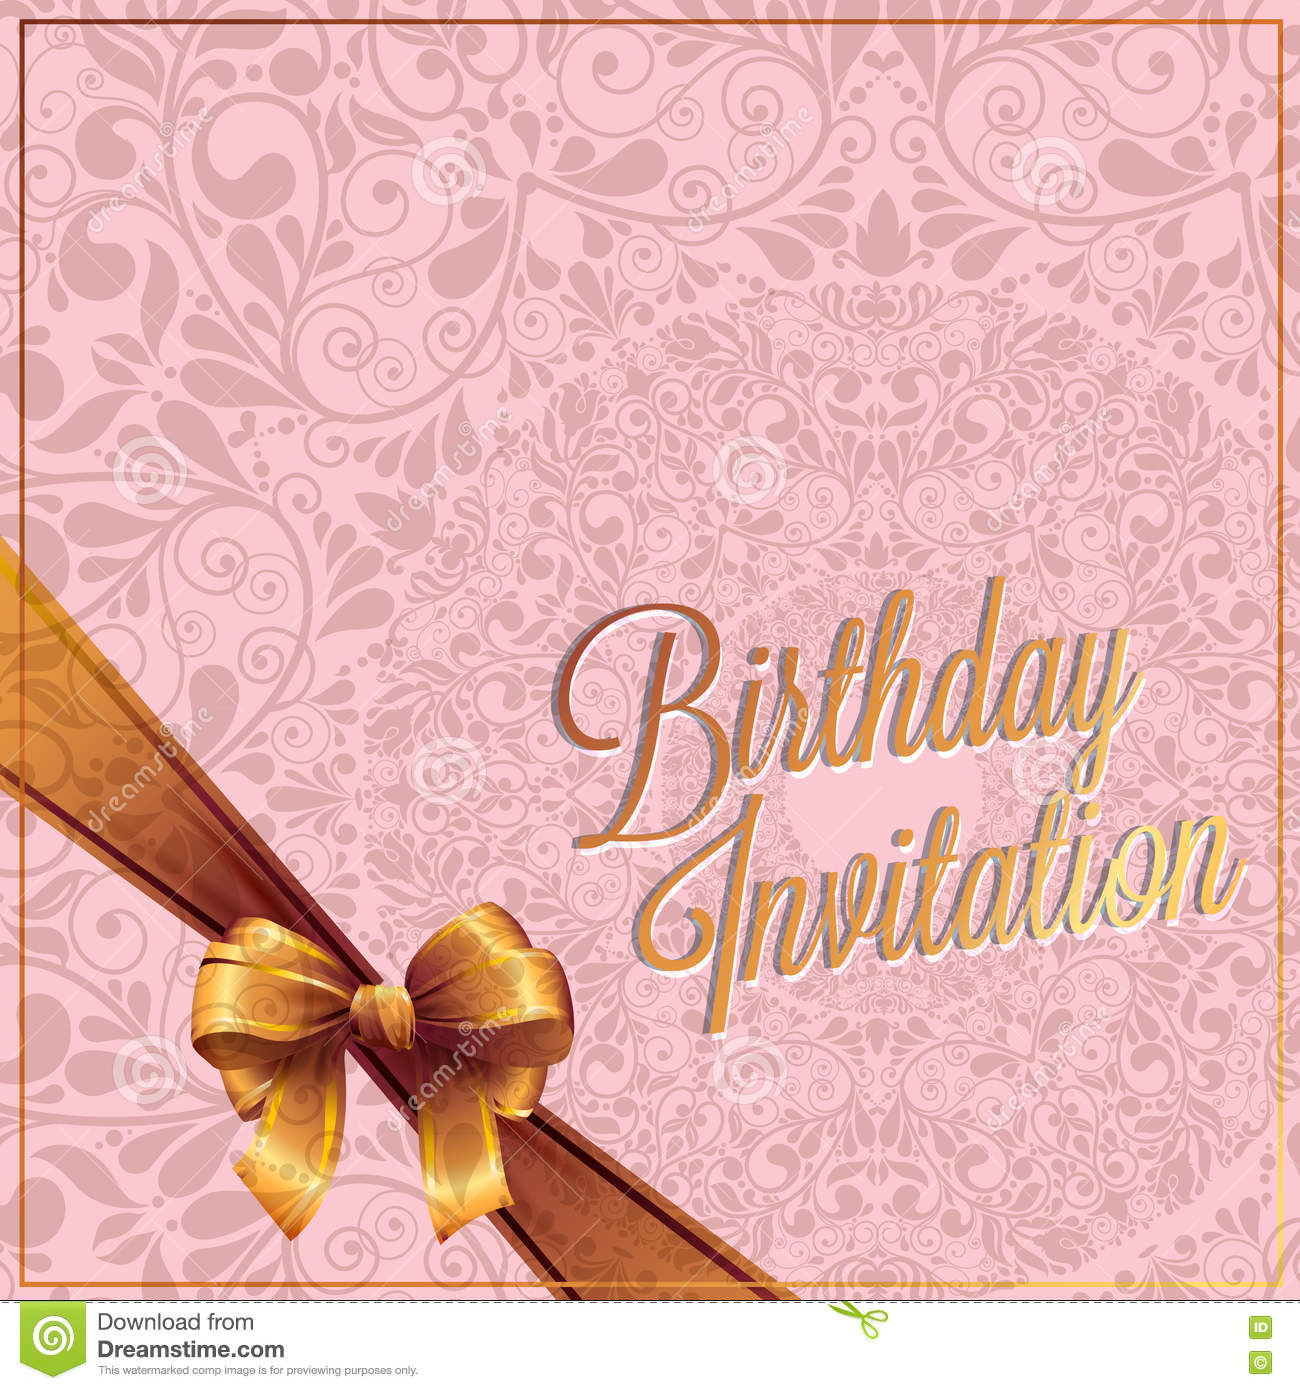 The birthday card and invitation card with pink color background the birthday card and invitation card with pink color background vector design stopboris Gallery